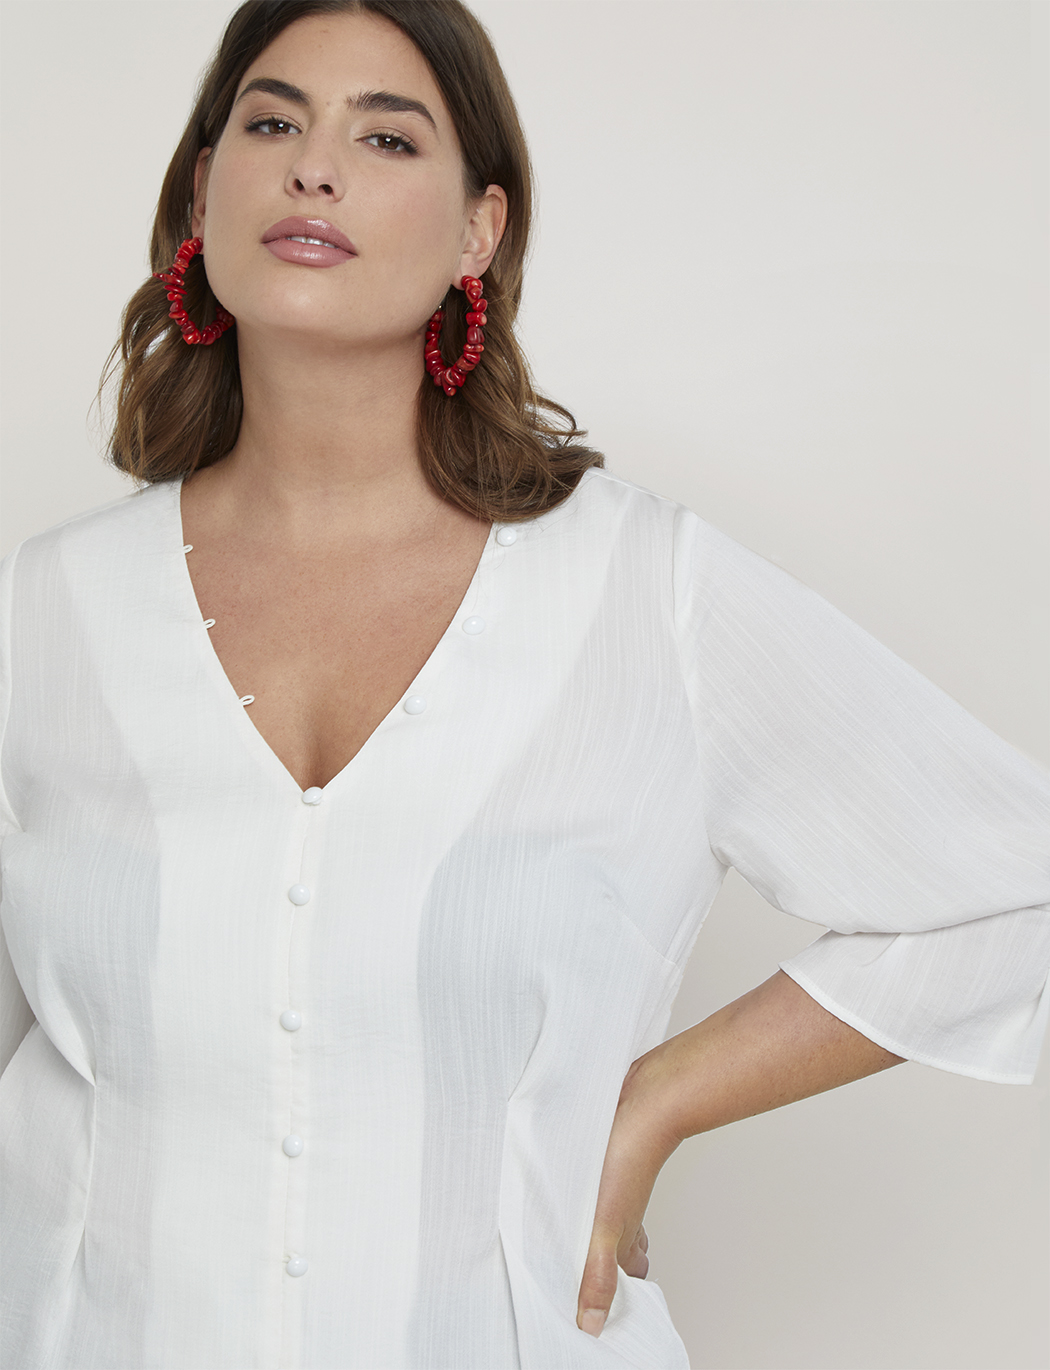 4945f703 Pleated Sleeve Button Front Top | Women's Plus Size Tops | ELOQUII